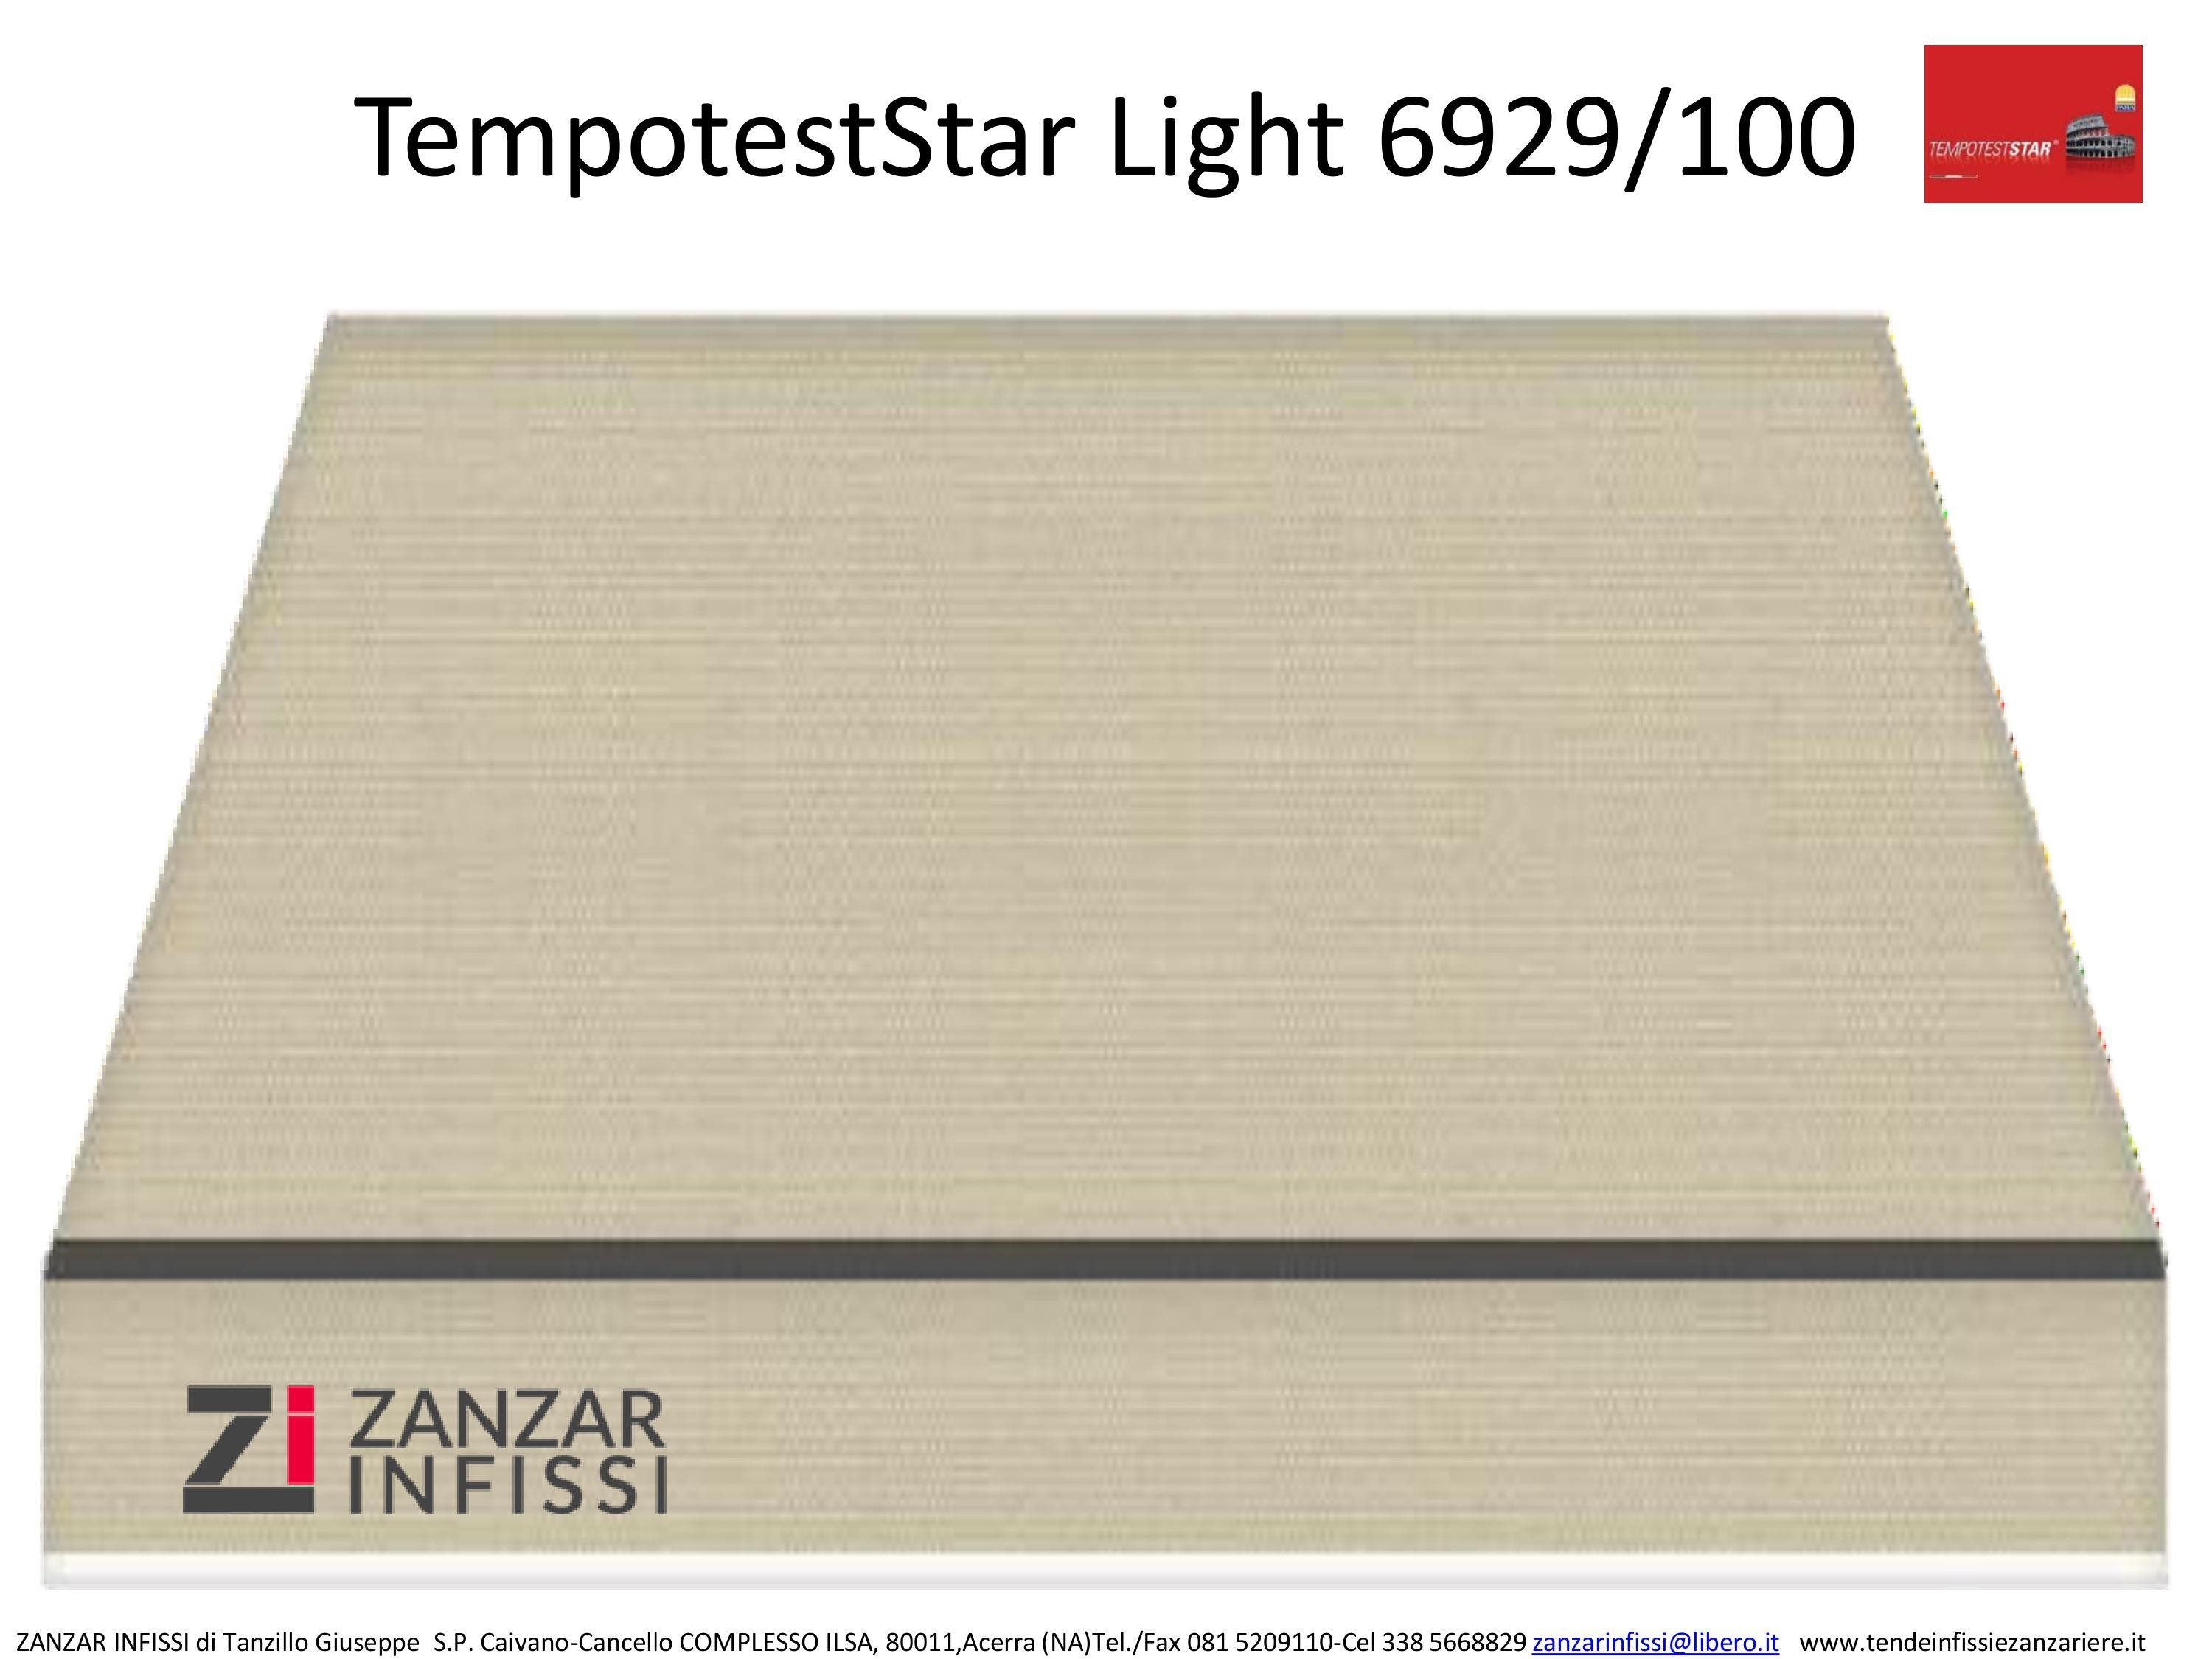 Tempotest star light 6929/100